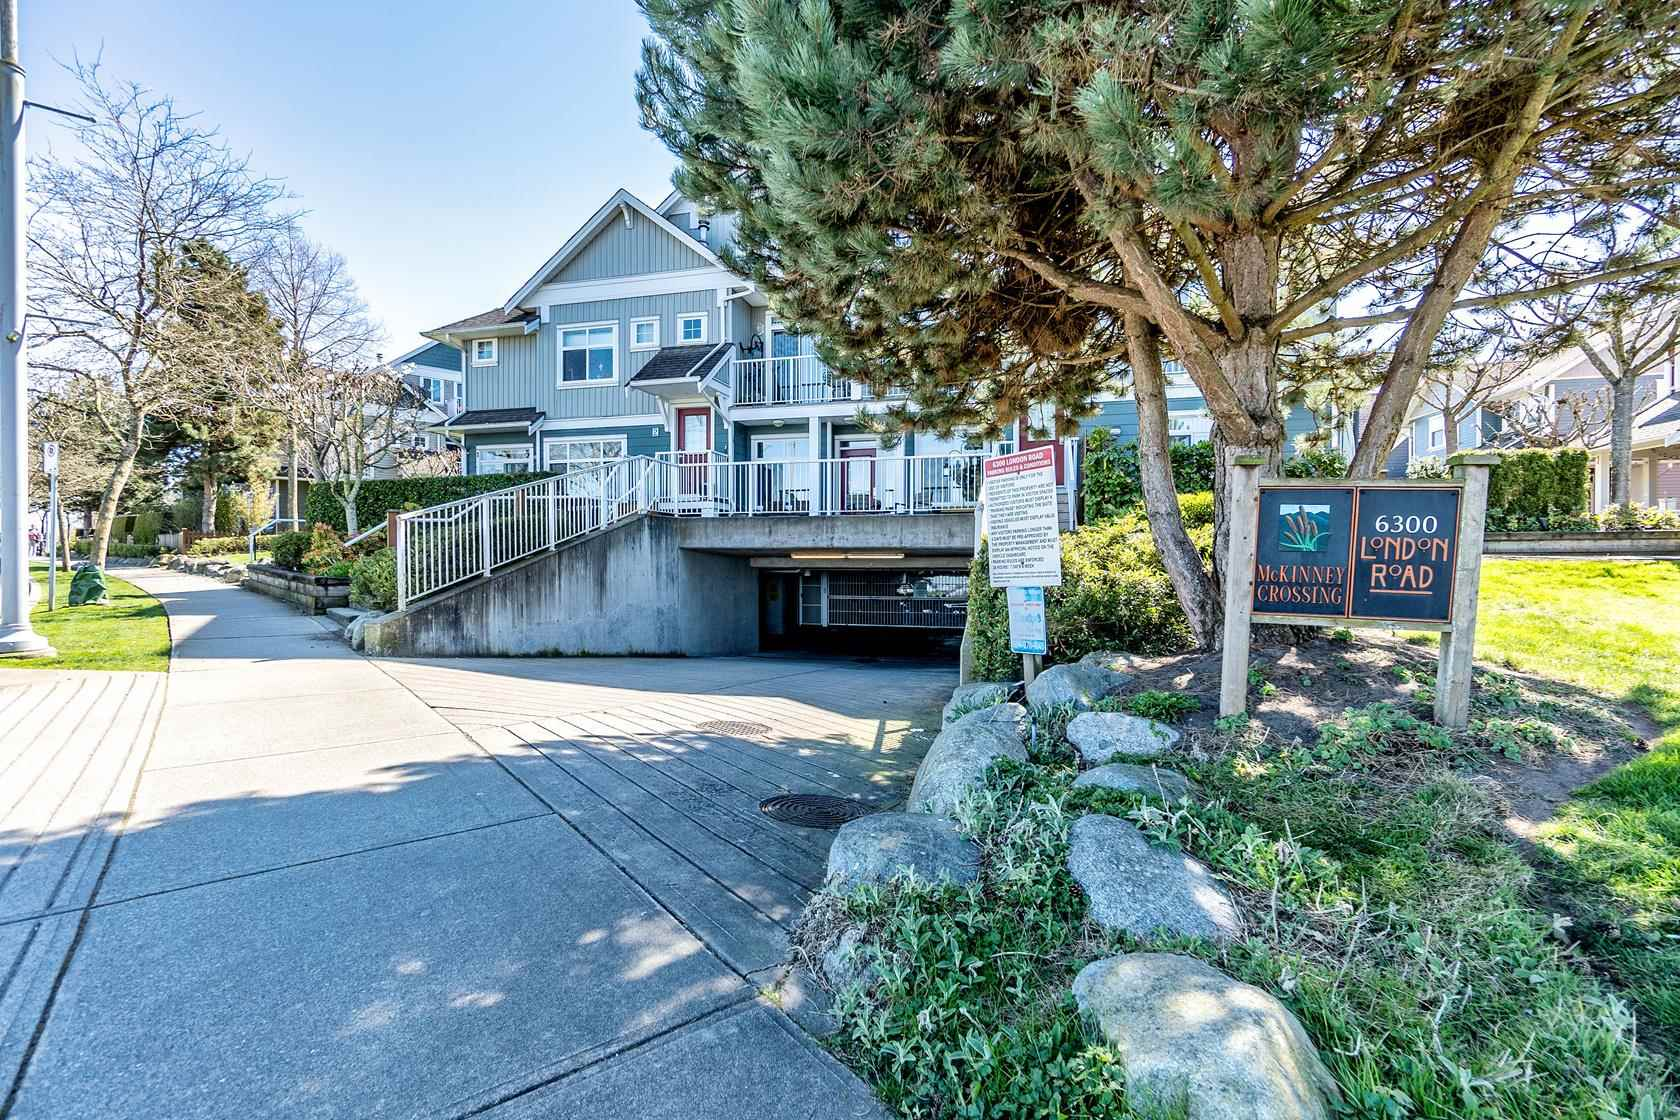 57 6300 LONDON ROAD - Steveston South Townhouse for sale, 2 Bedrooms (R2597525)